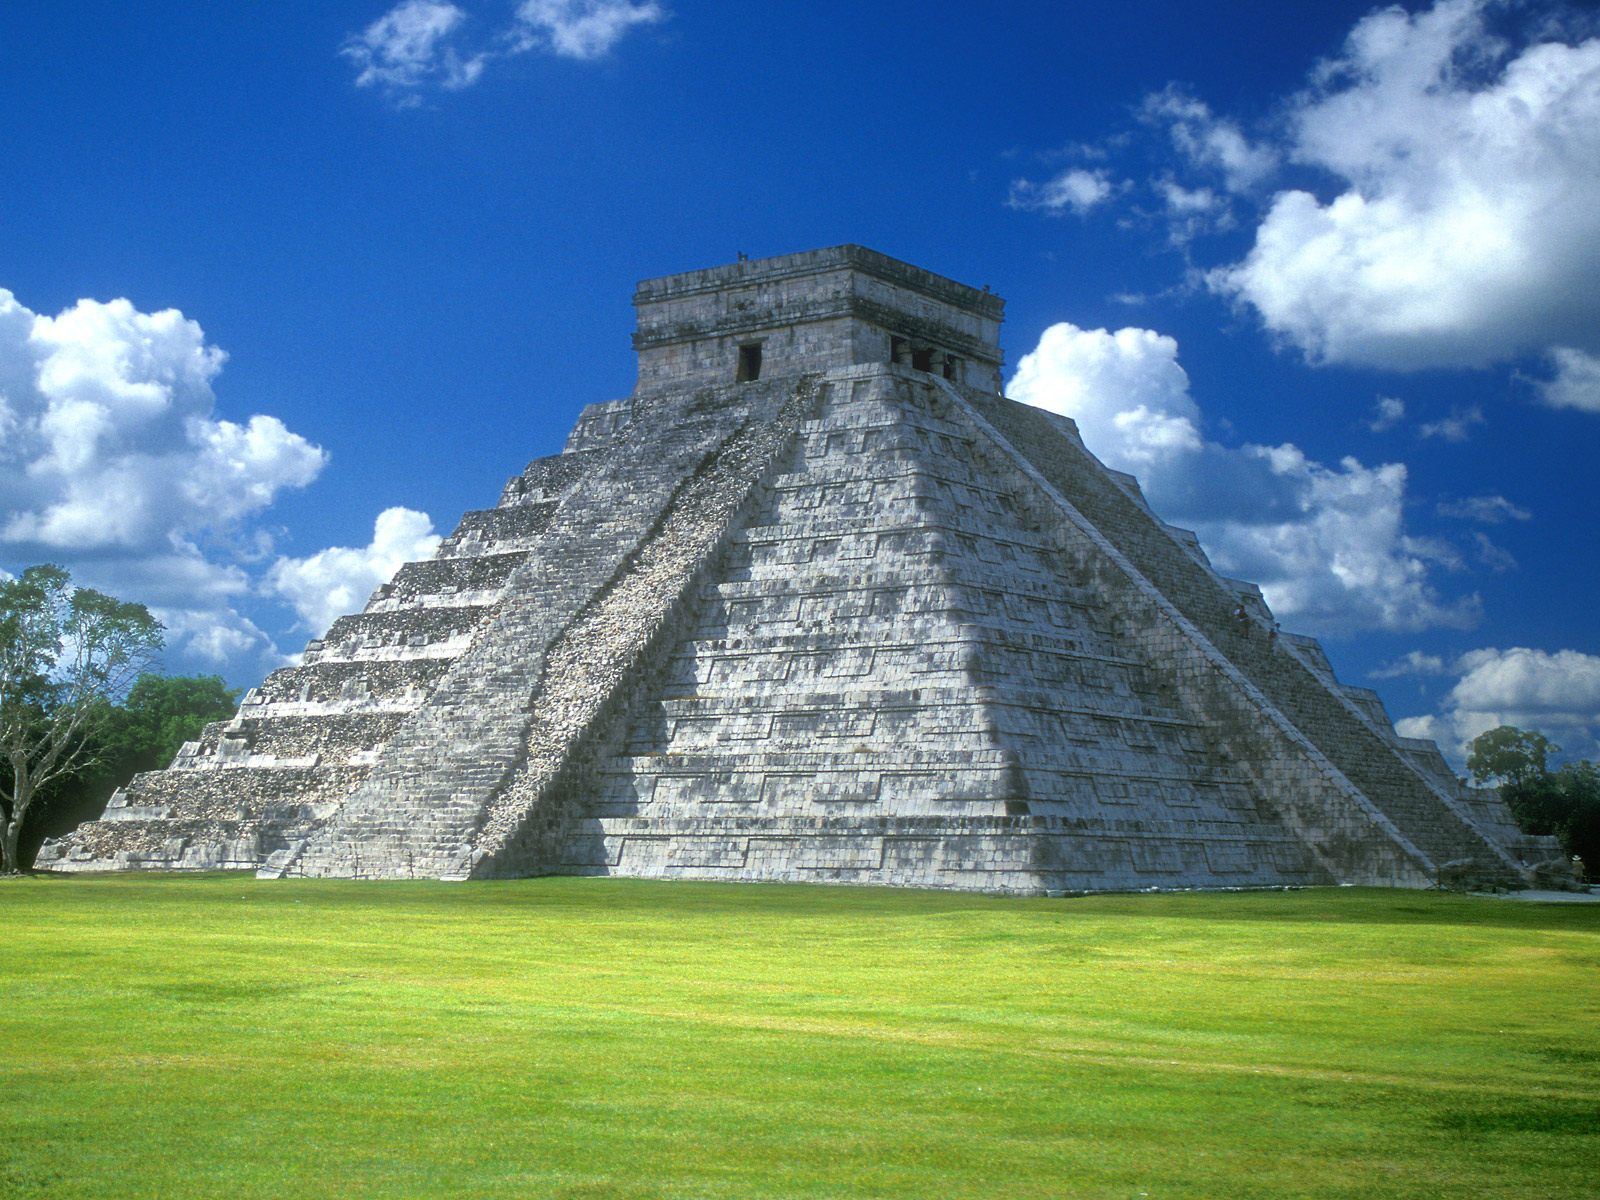 Pyramid Of_Kukulkan__Chichen_Itza__Yucatan_Peninsula__Mexico